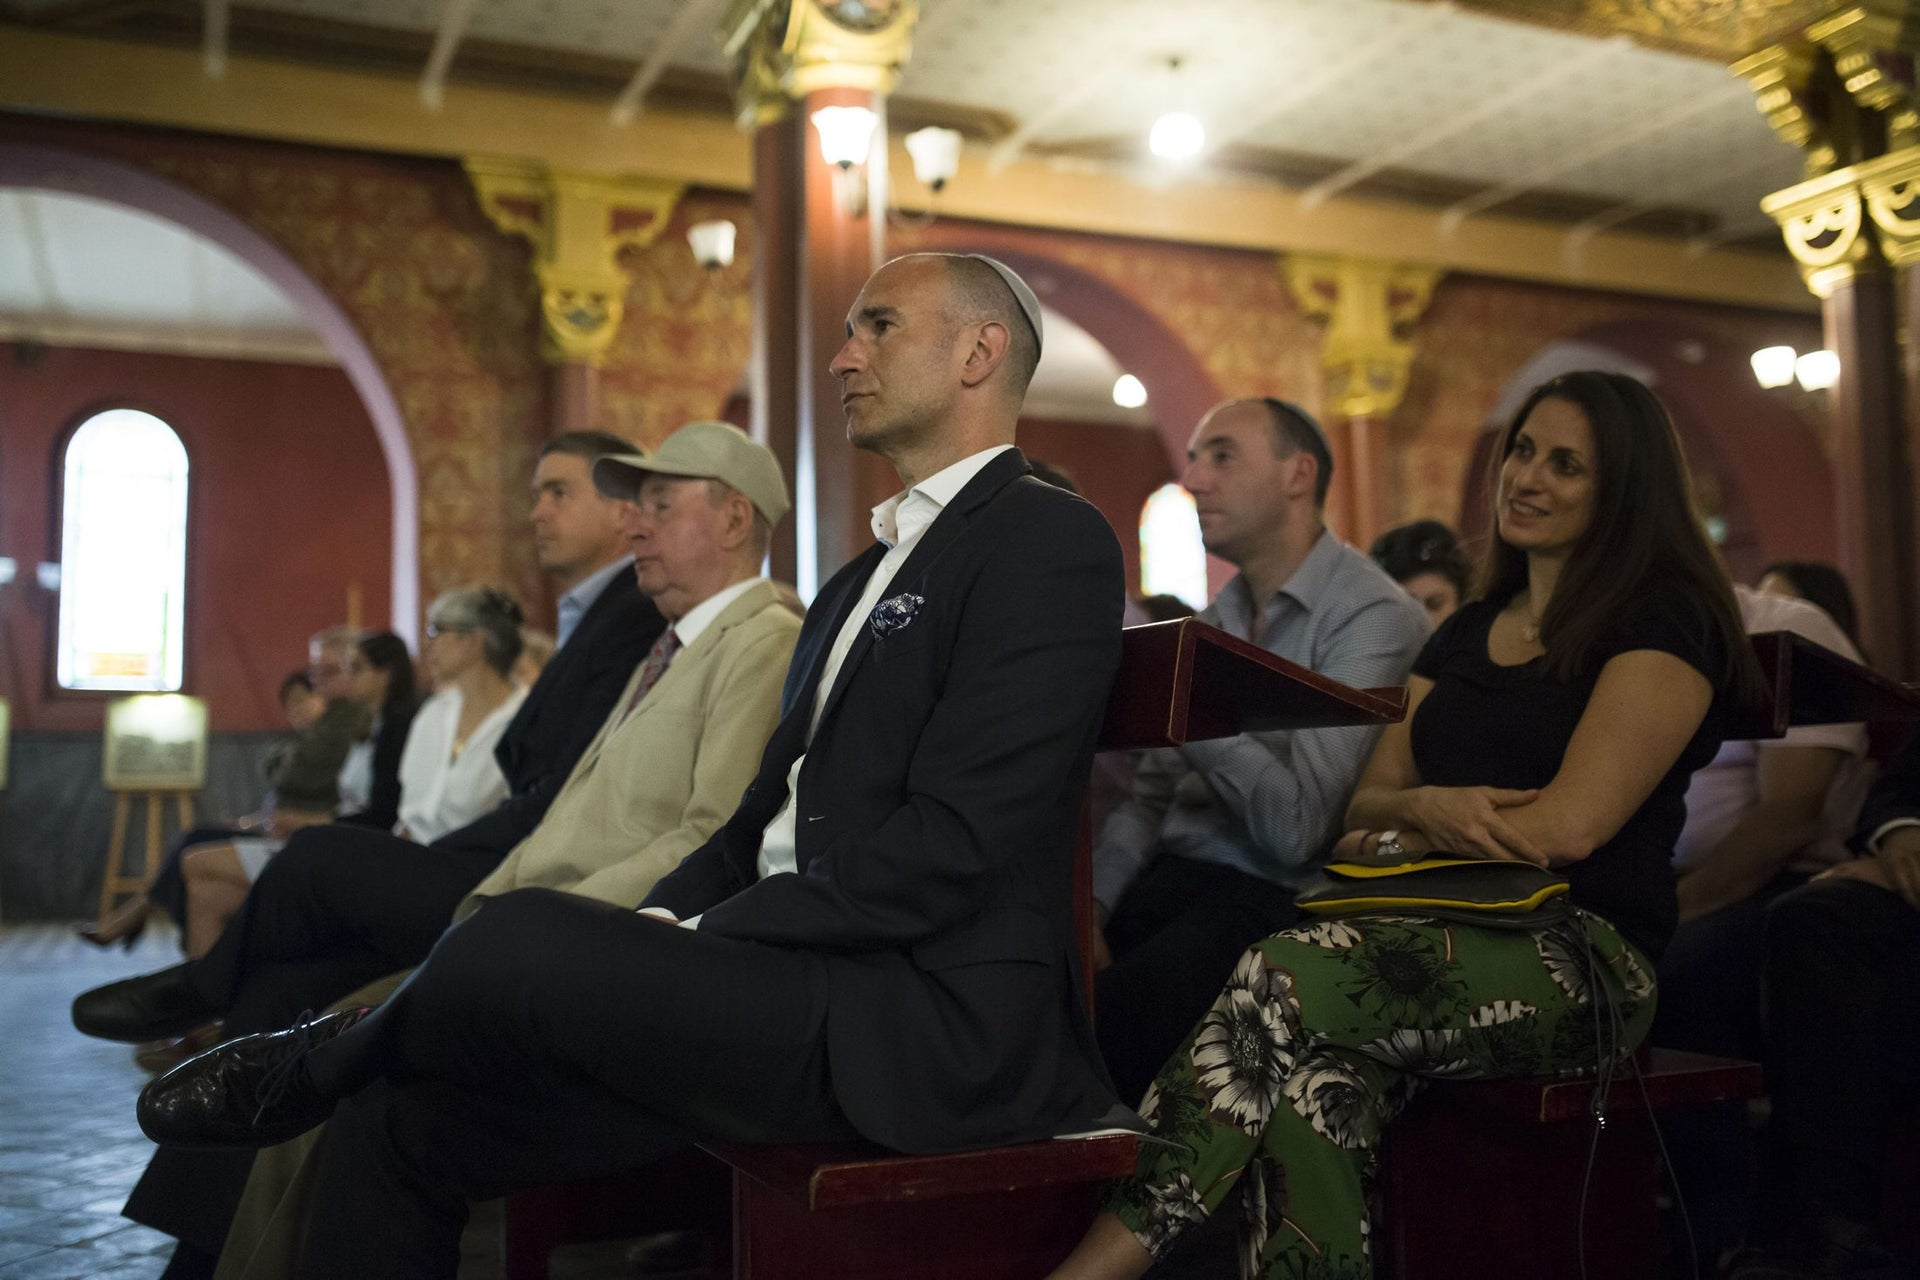 Jonathan Ornstein, director of the JCC Krakow, attending the institution's 10th anniversary party at Tempel Synagogue, April 22, 2018.